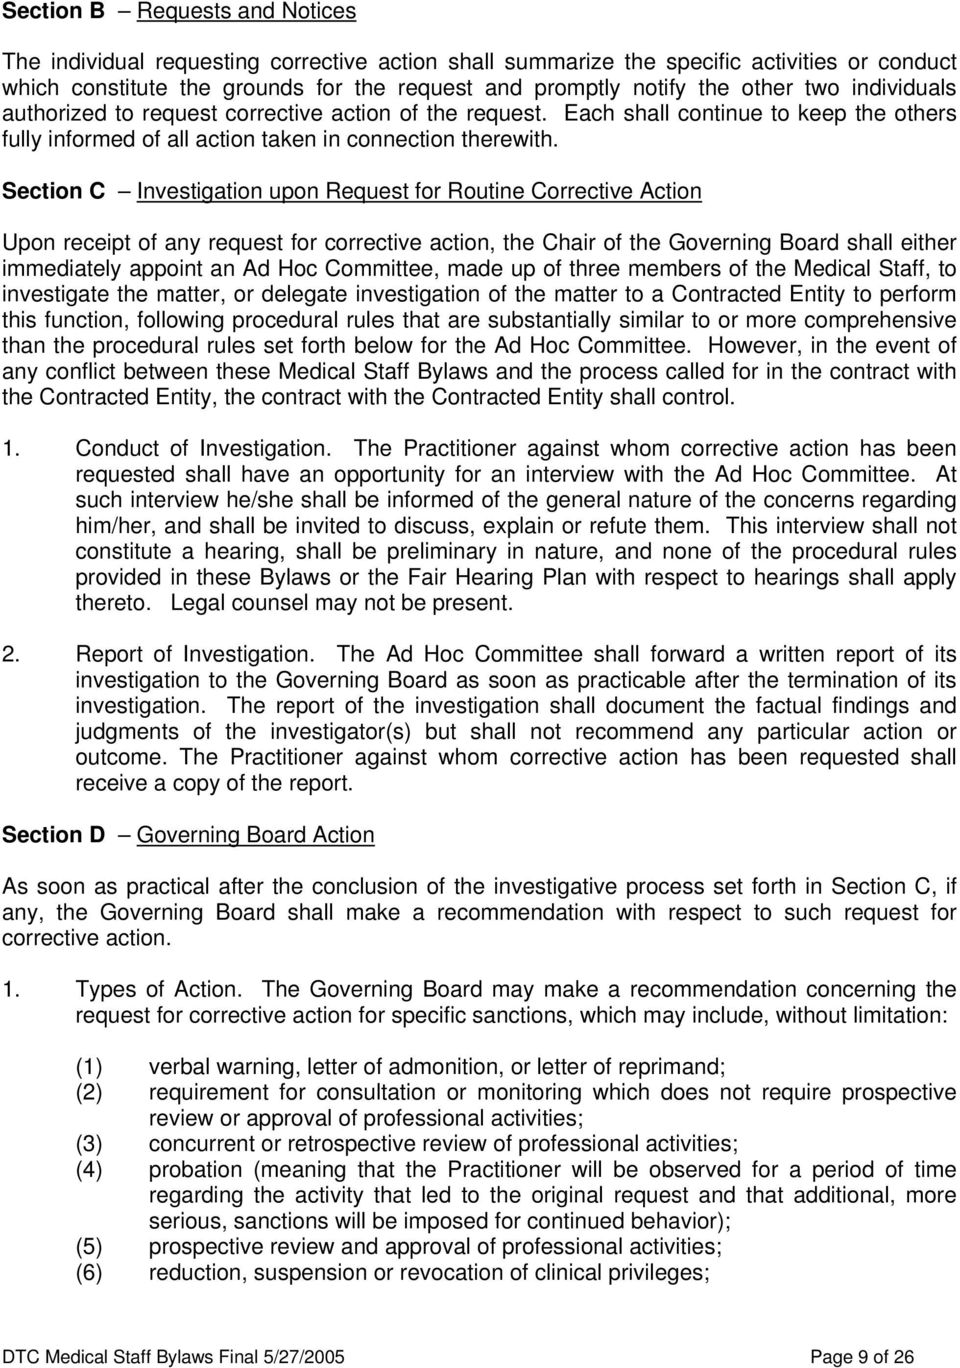 Section C Investigation upon Request for Routine Corrective Action Upon receipt of any request for corrective action, the Chair of the Governing Board shall either immediately appoint an Ad Hoc